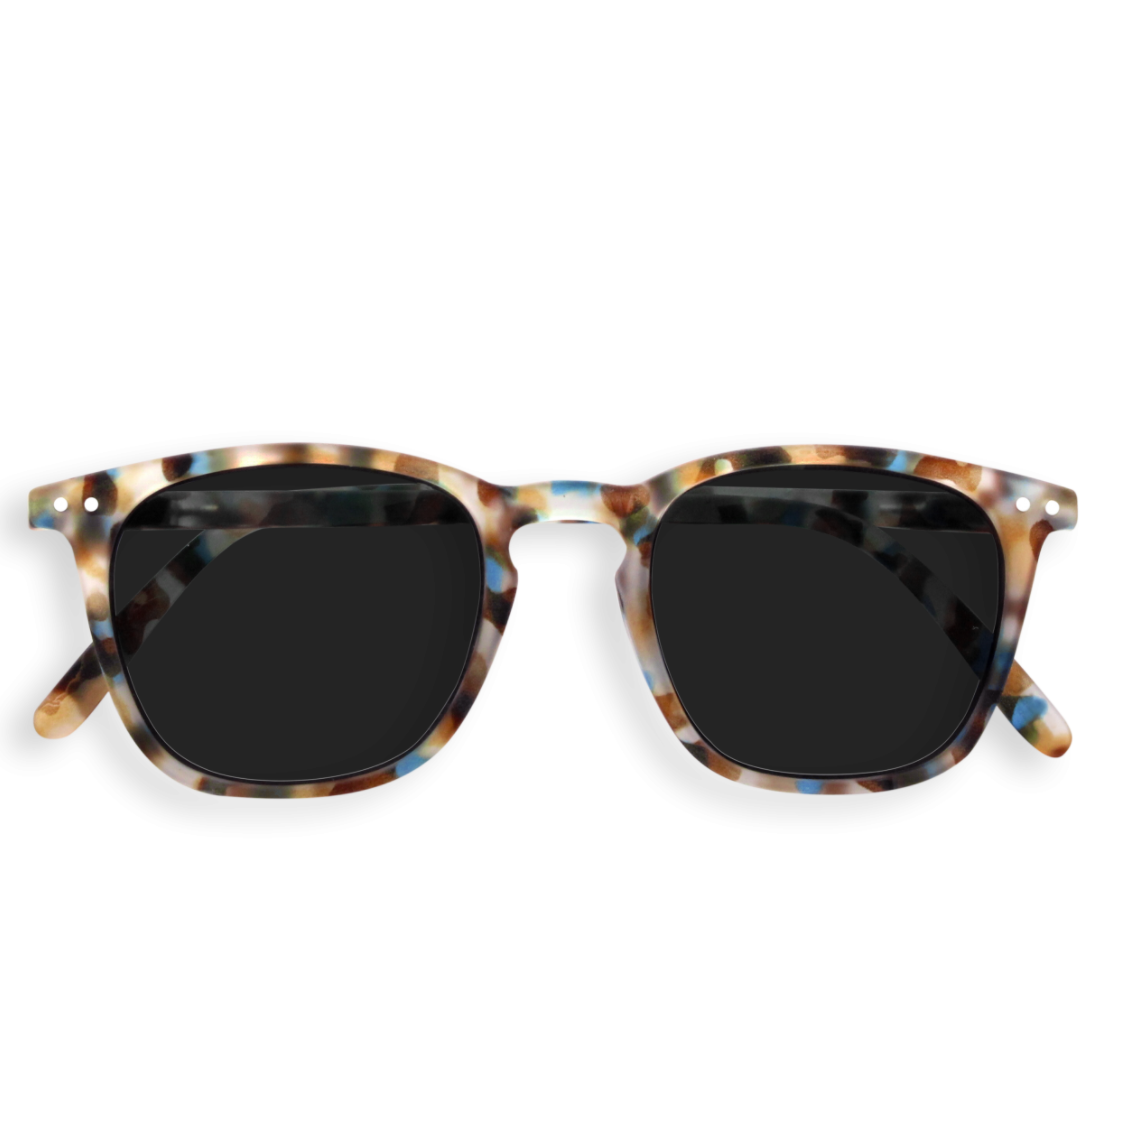 Sunglasses #E - Blue Tortoise